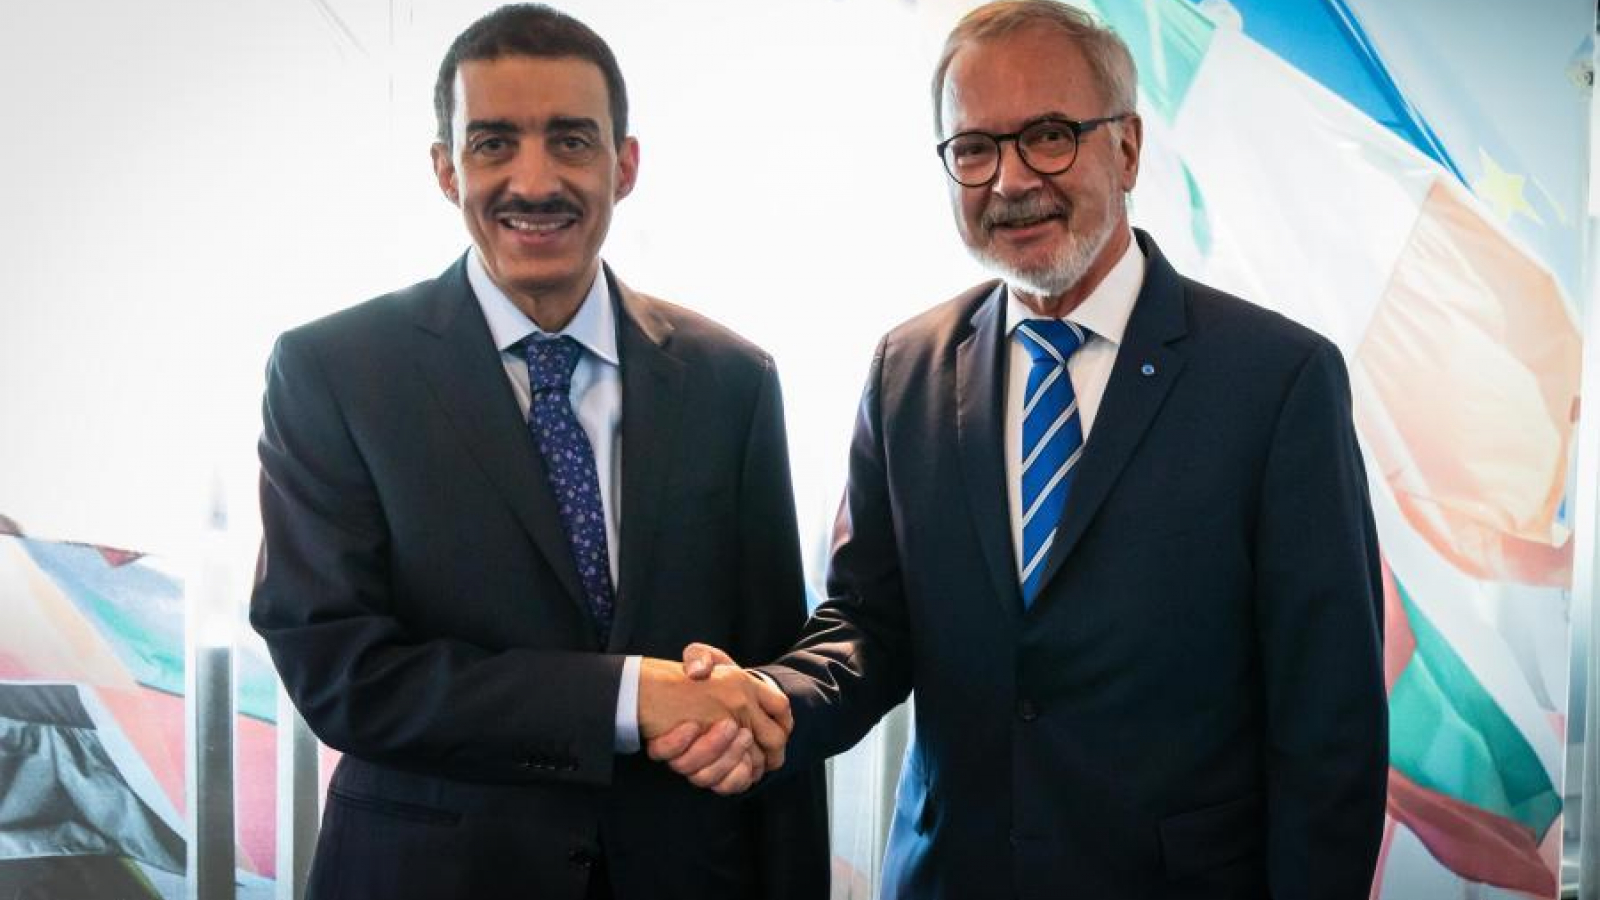 EIB's President, Mr Hoyer and IsDB's President, Mr Hajjar meet at the EIB